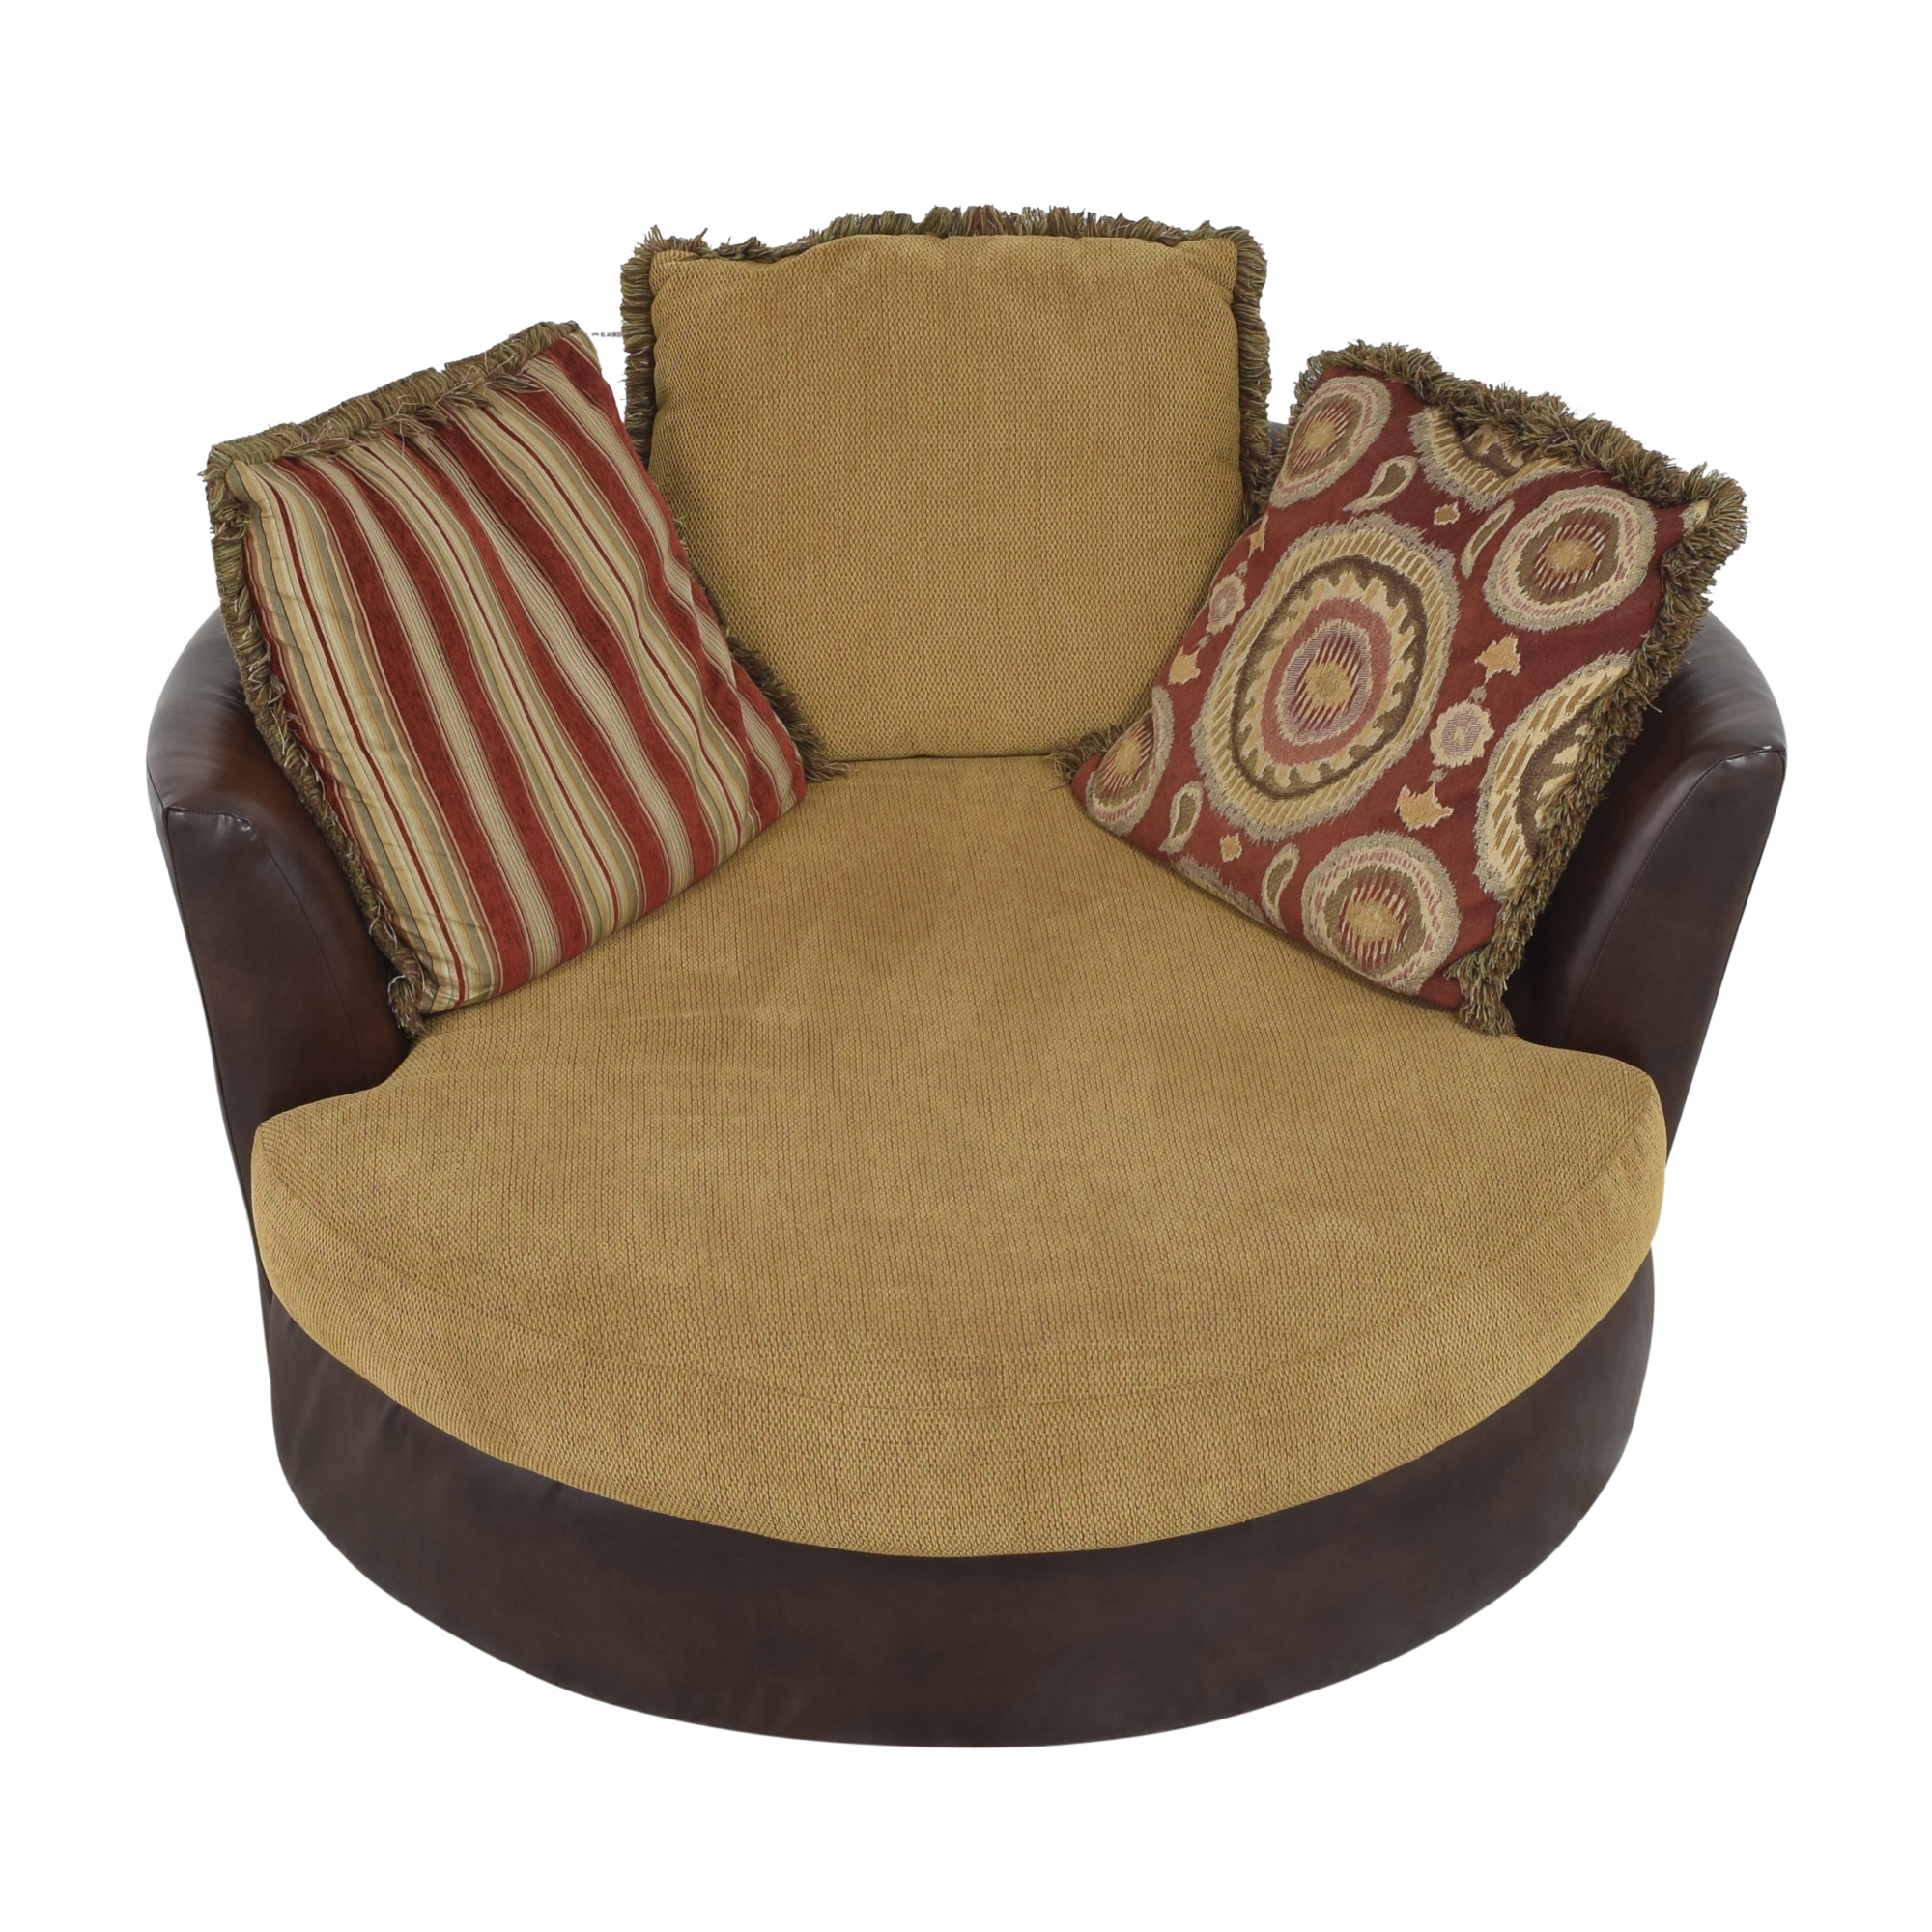 Albany Industries Albany Industries Newport Swivel Chair dimensions